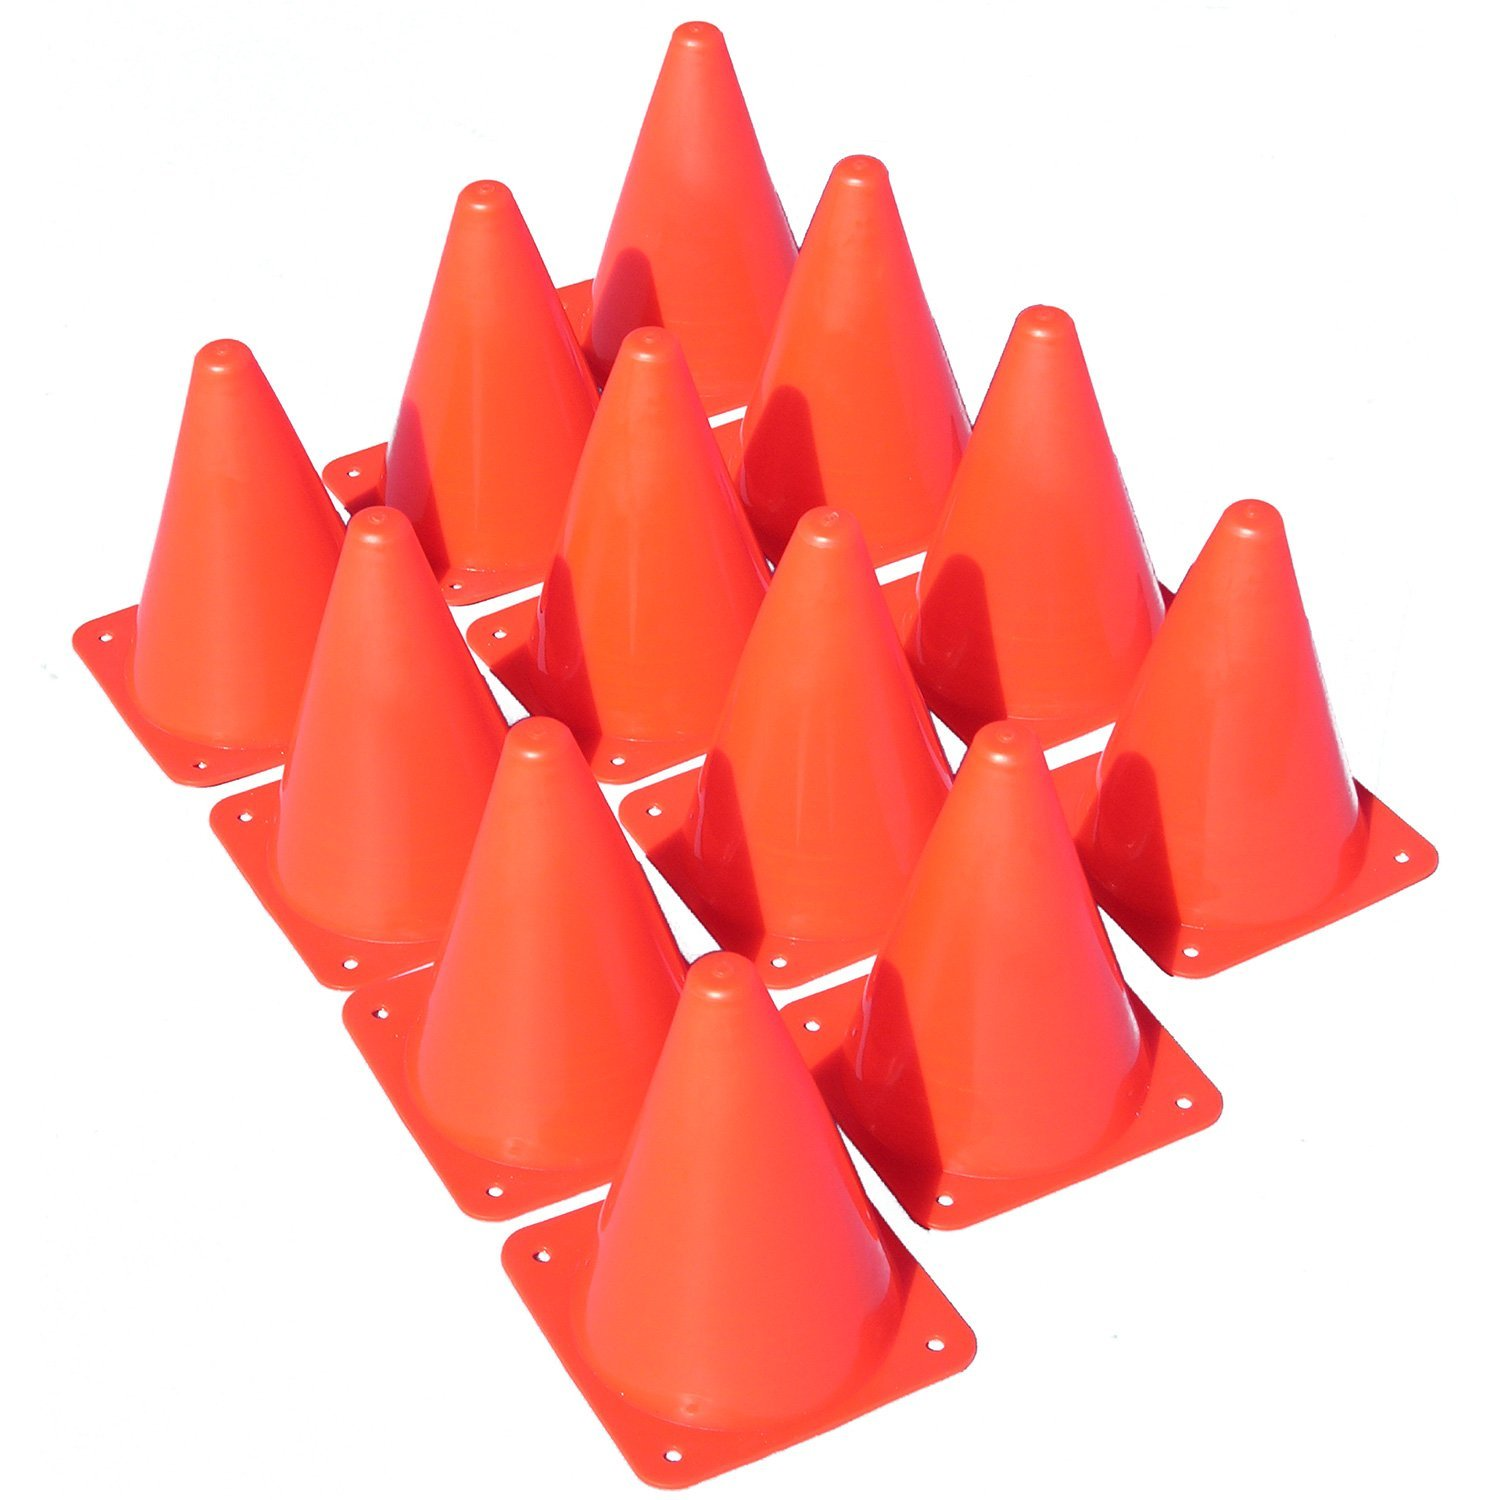 """0615dfd98 Get Quotations · Made4Sports 7 Inch Plastic Cones - Indoor/Outdoor 7""""  Flexible Sports Training, Agility"""